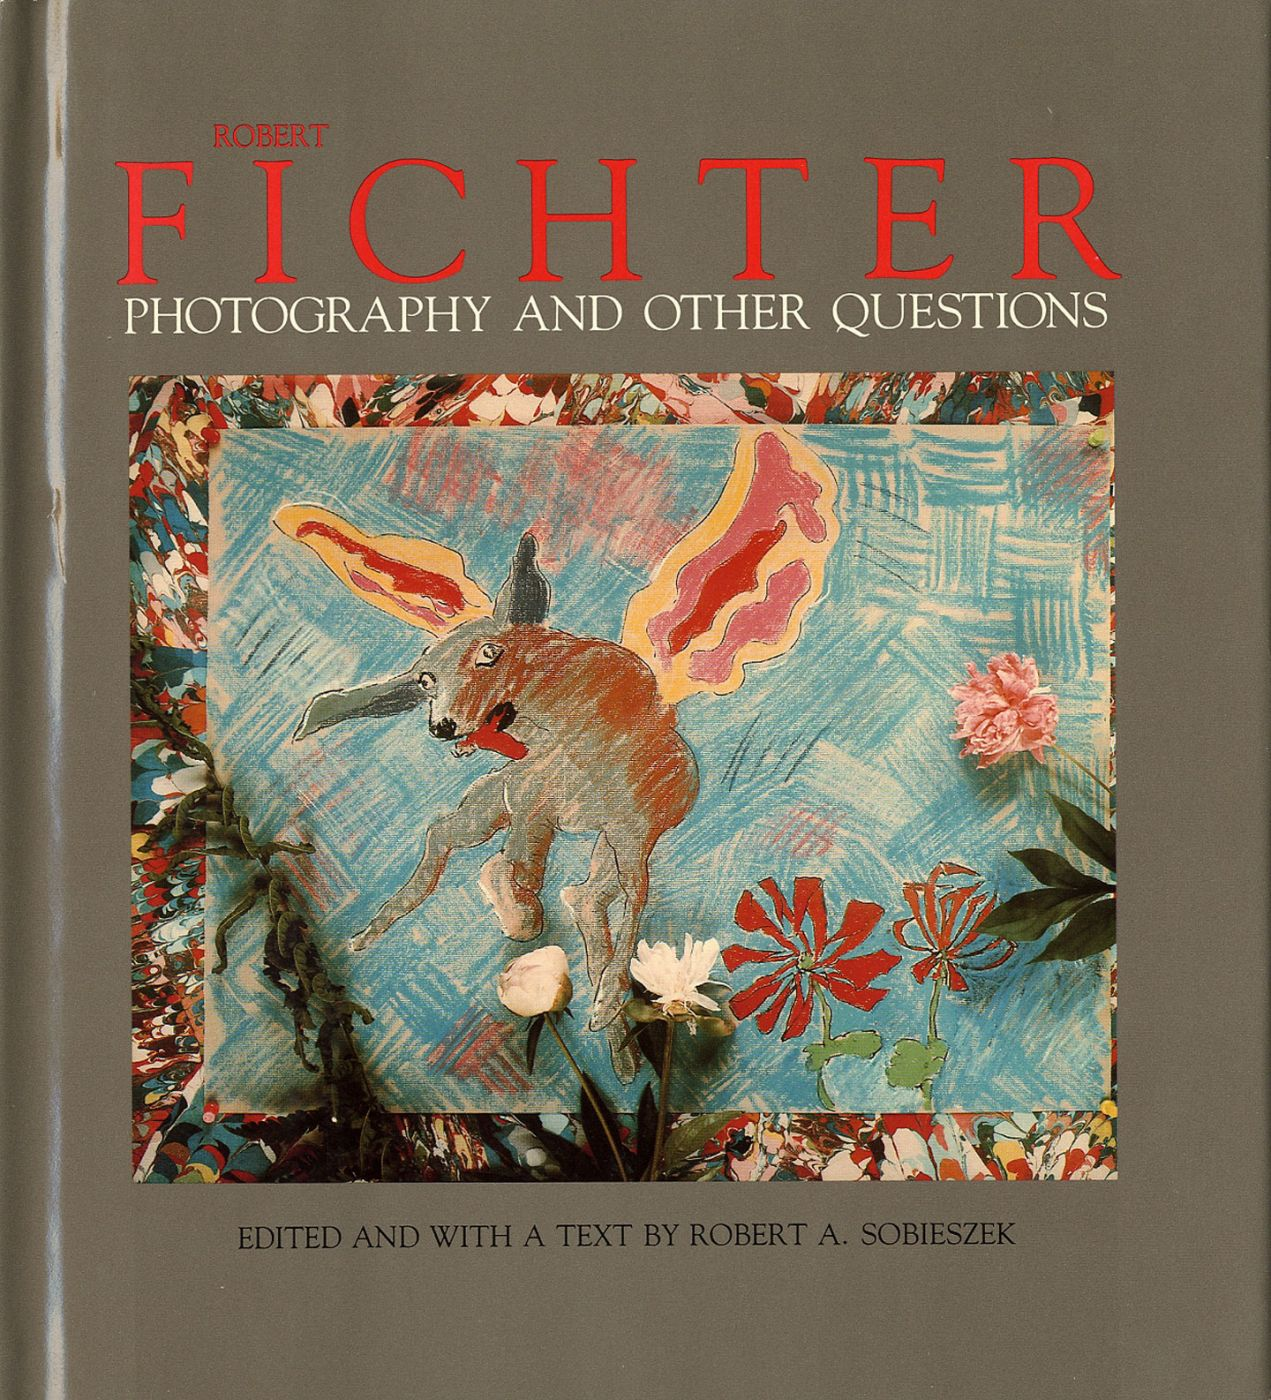 Robert Fichter: Photography and Other Questions